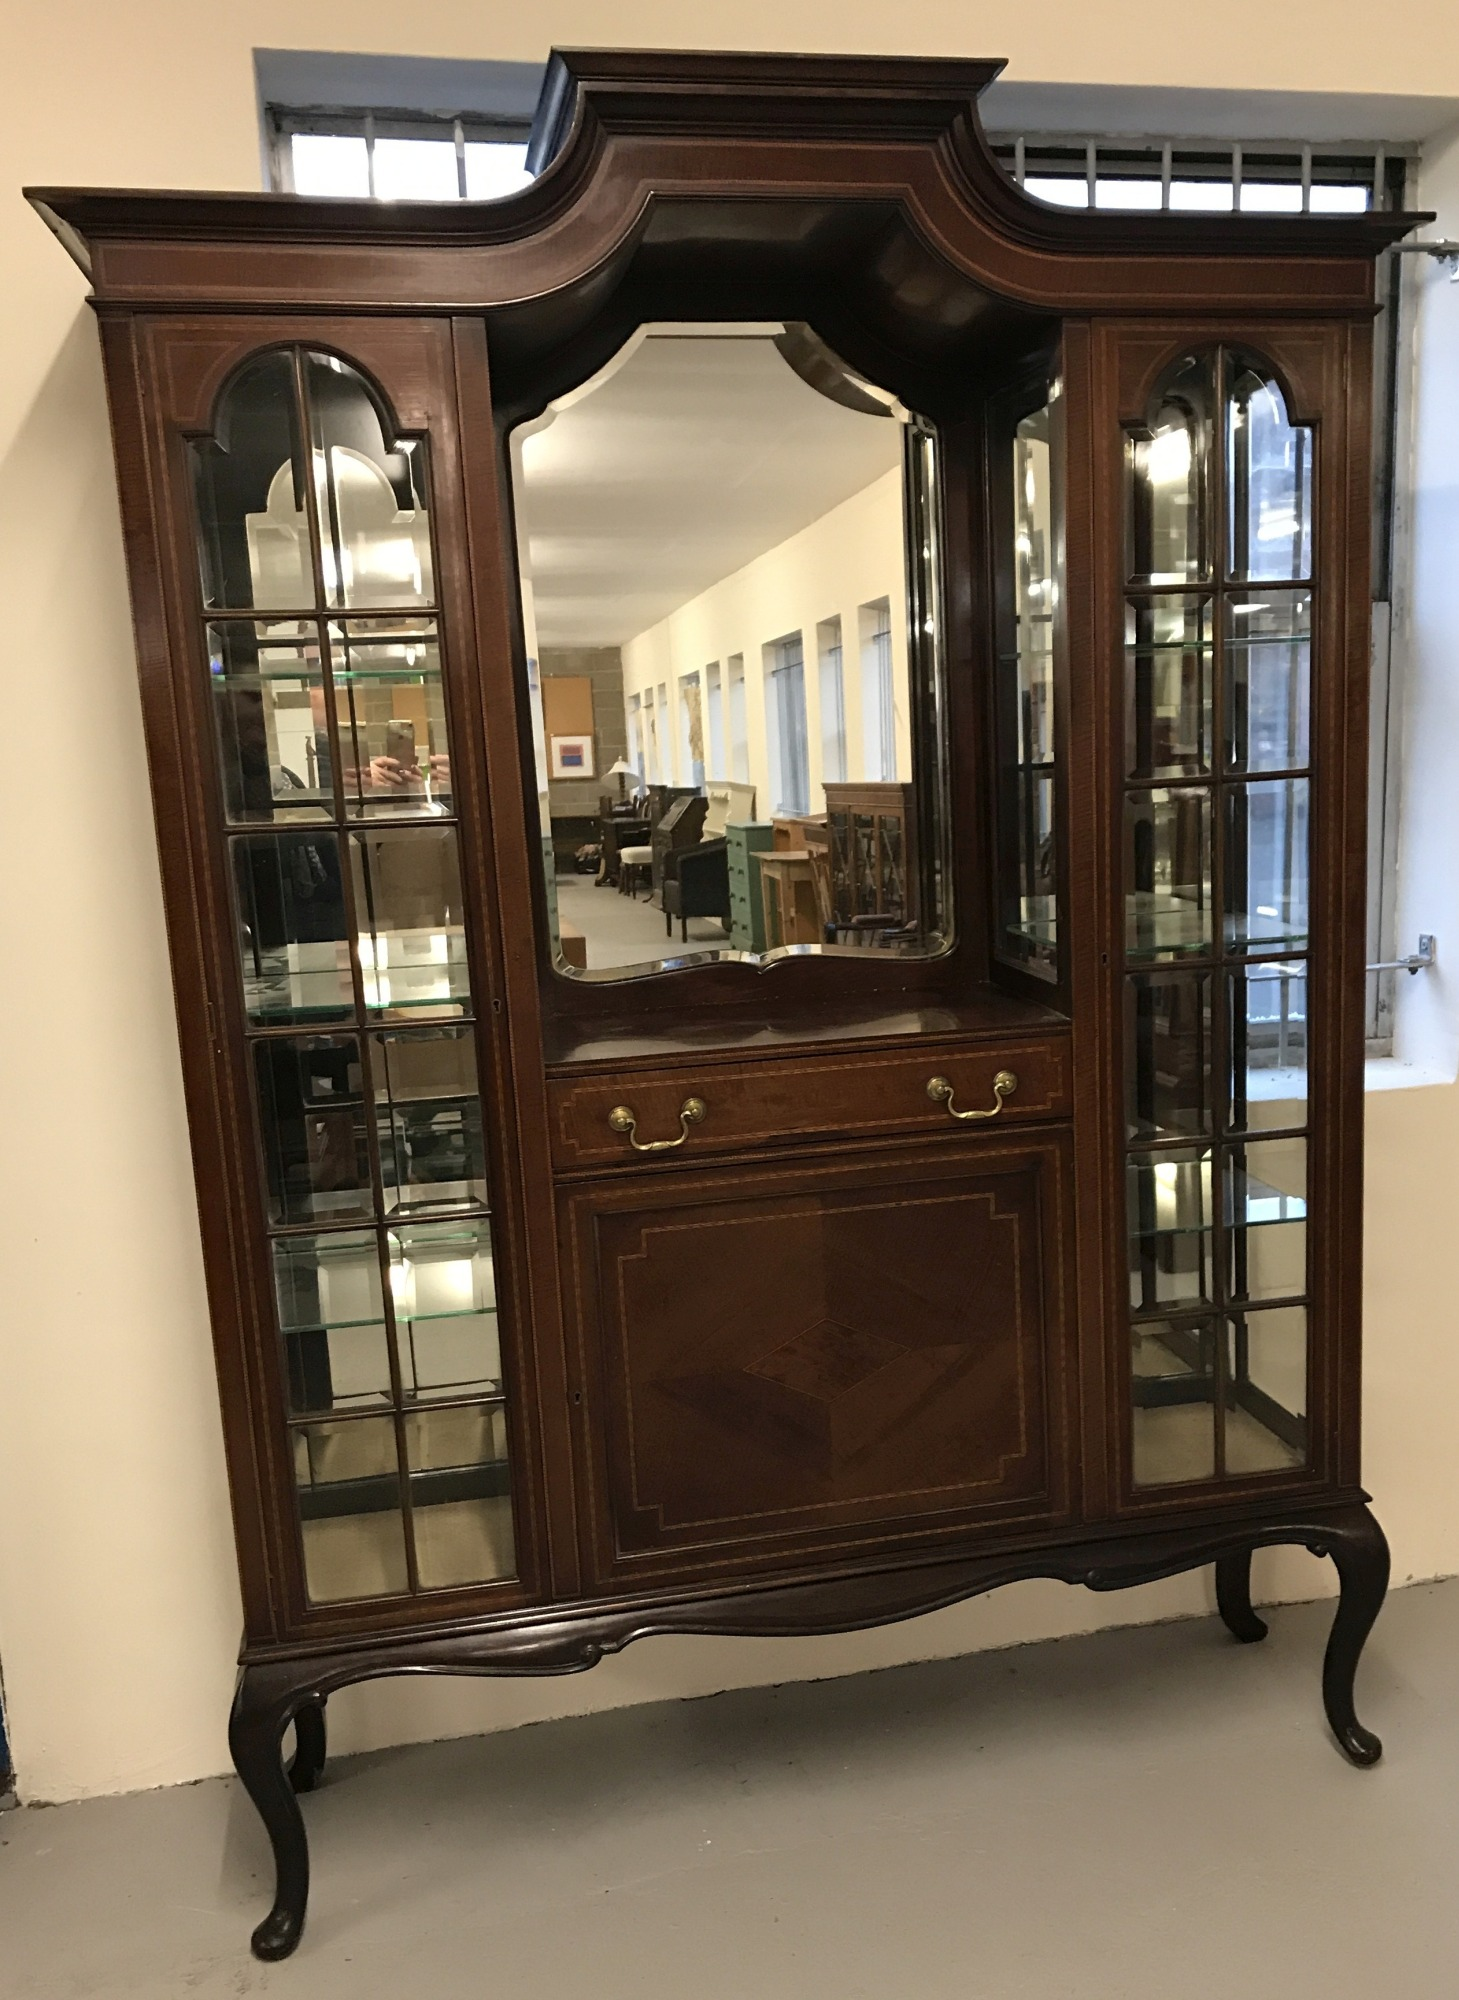 Lot 497 - A Victorian mirror backed glass fronted display cabinet with central cupboard and drawer.